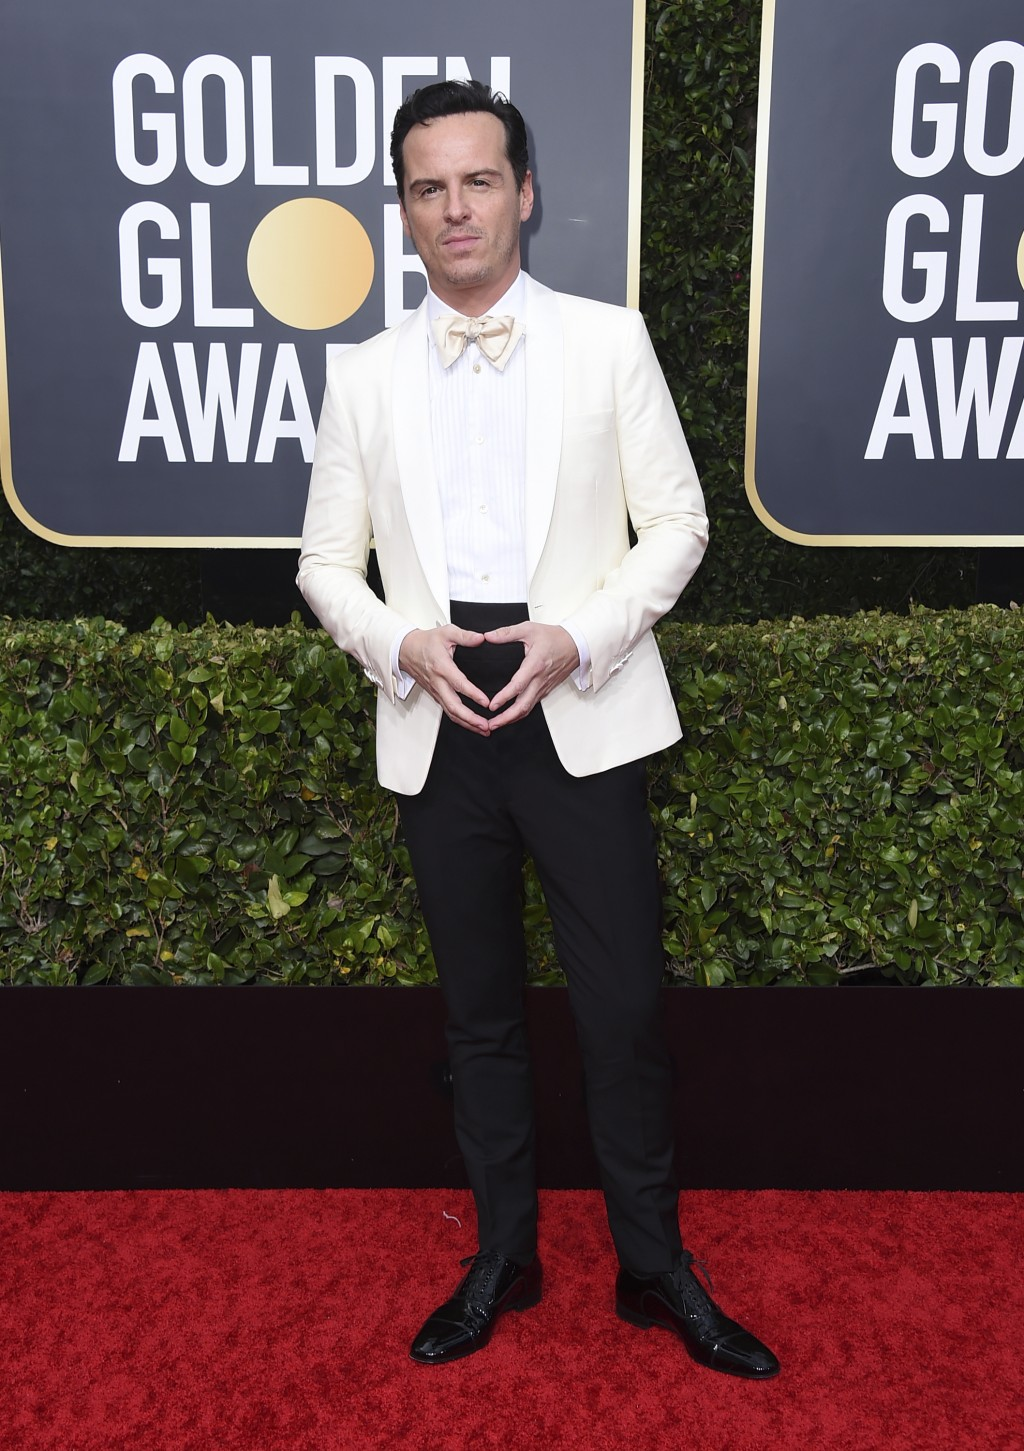 Andrew Scott arrives at the 77th annual Golden Globe Awards at the Beverly Hilton Hotel on Sunday, Jan. 5, 2020, in Beverly Hills, Calif. (Photo by Jo...